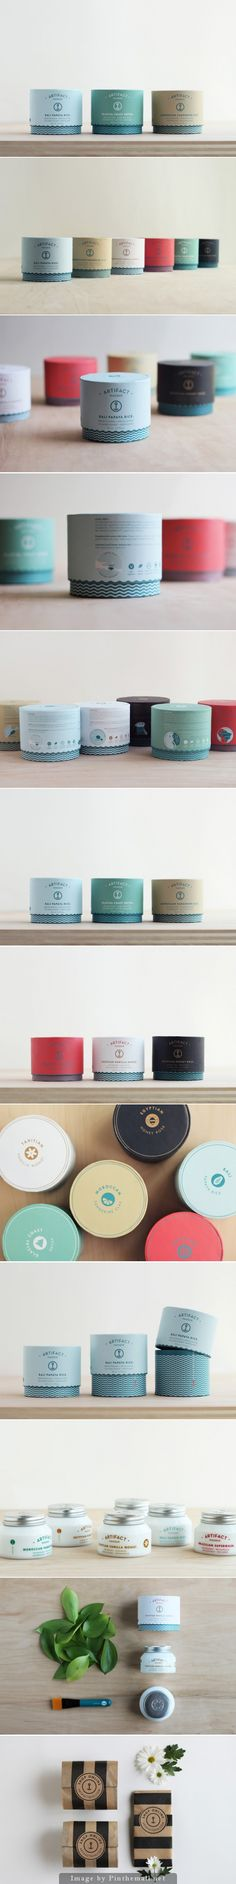 #packaging #beautyproduct #cardboard #design #graphicdesign #minimalist #simplistic